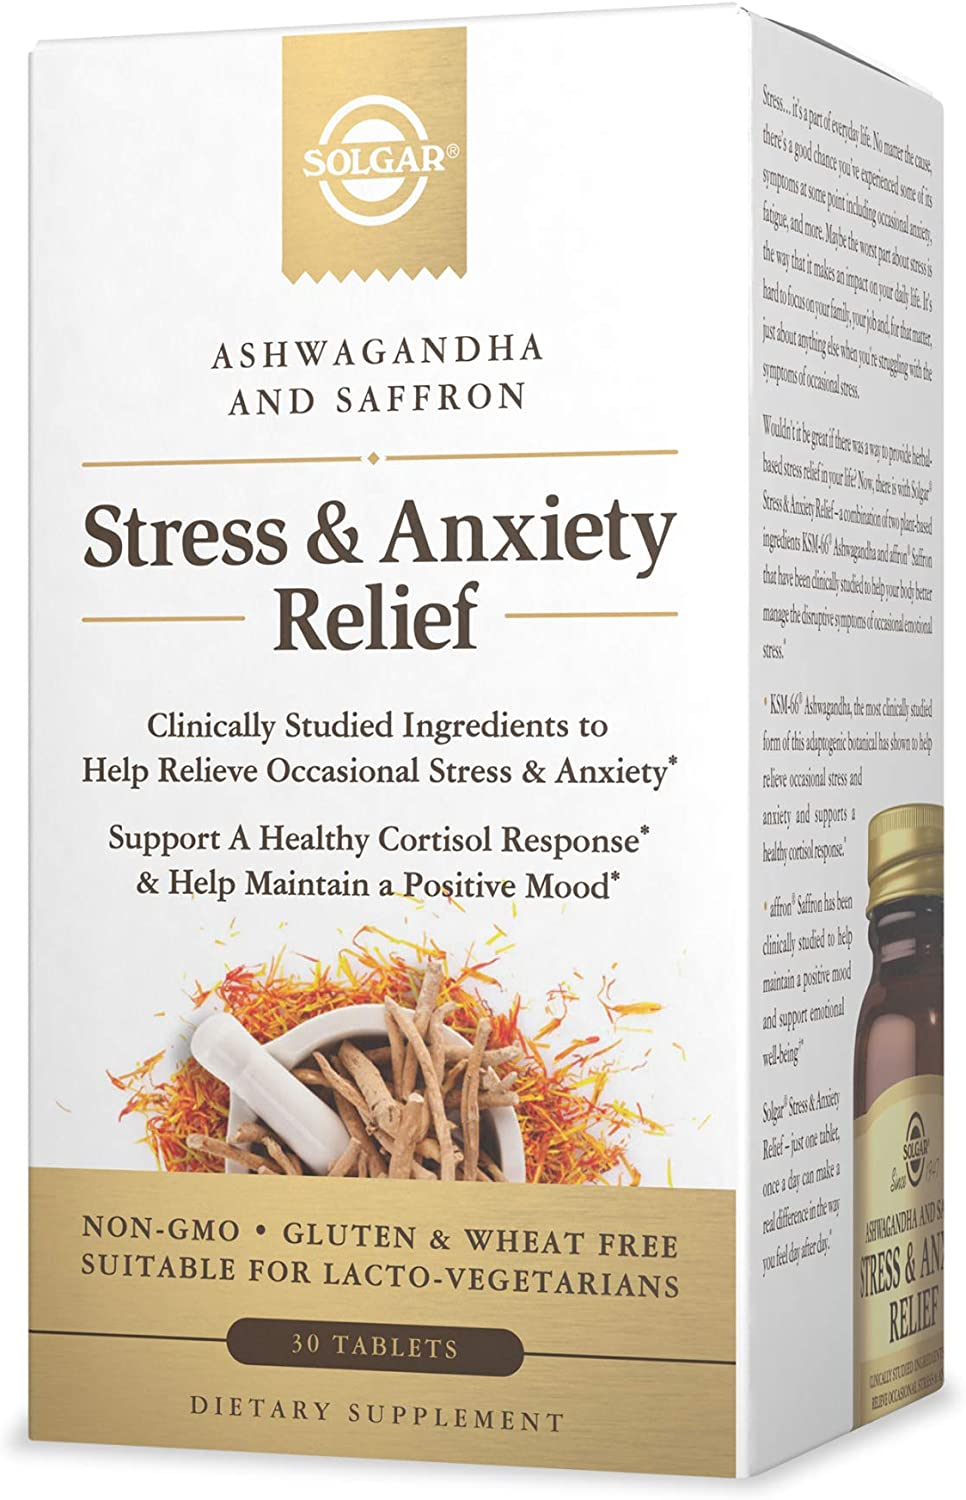 Stress & Anxiety Relief - Solgar - 30 tablets